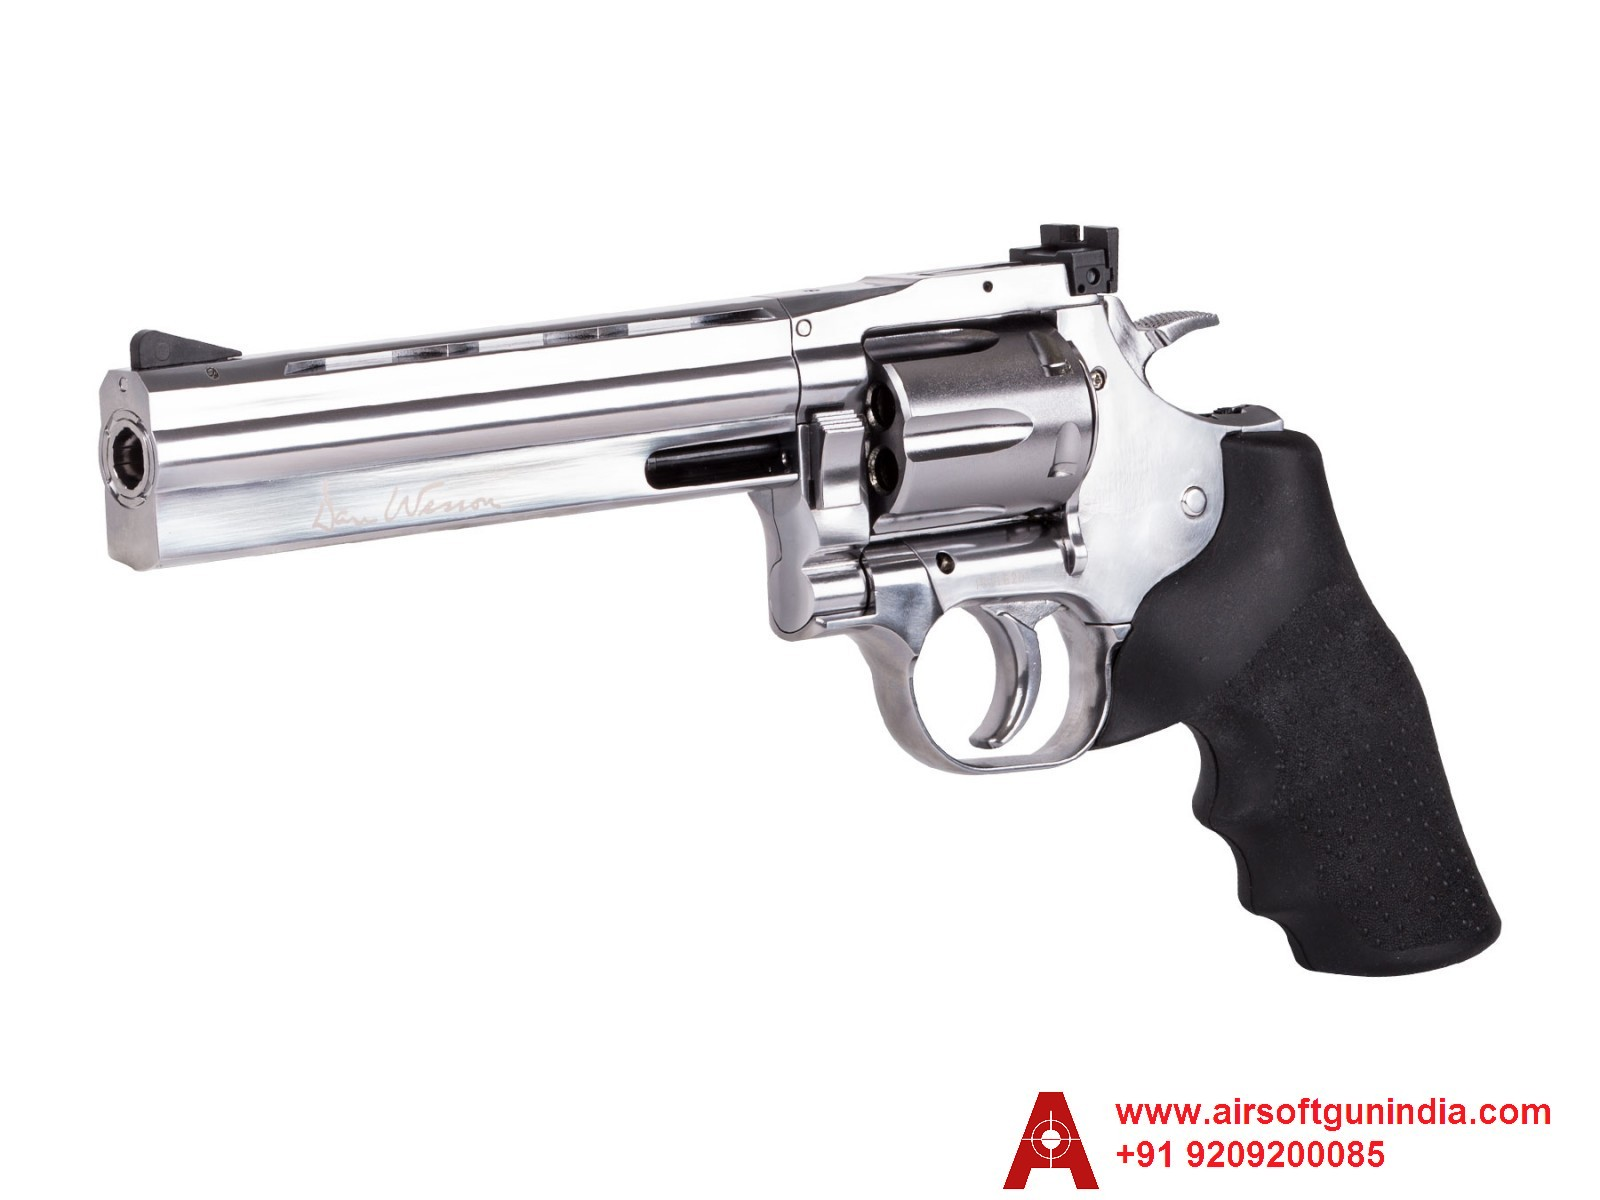 Dan Wesson 715 6 Inch  CO2 BB Revolver Nickel By Airsoft Gun India